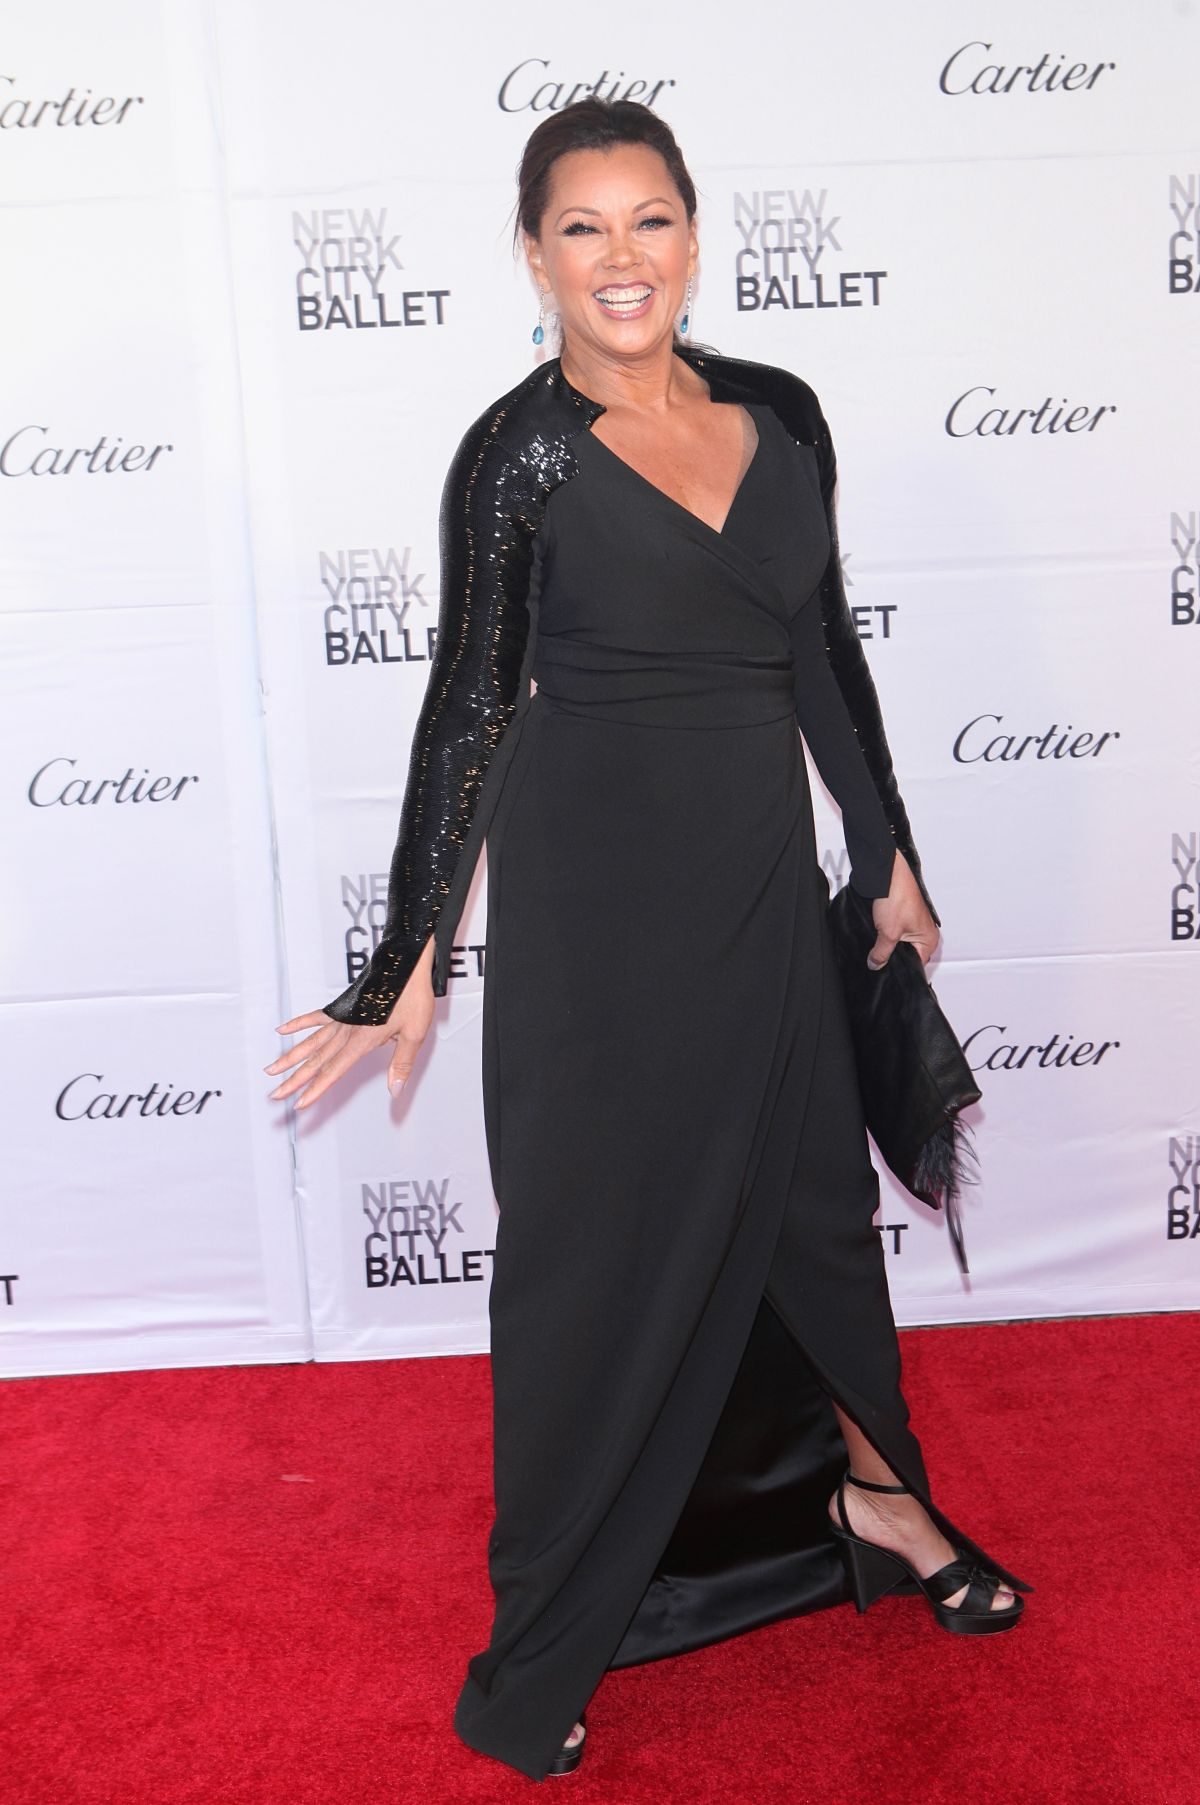 VANESSA WILLIAMS at New York City Ballet Spring Gala 05/04 ... Vanessa Williams